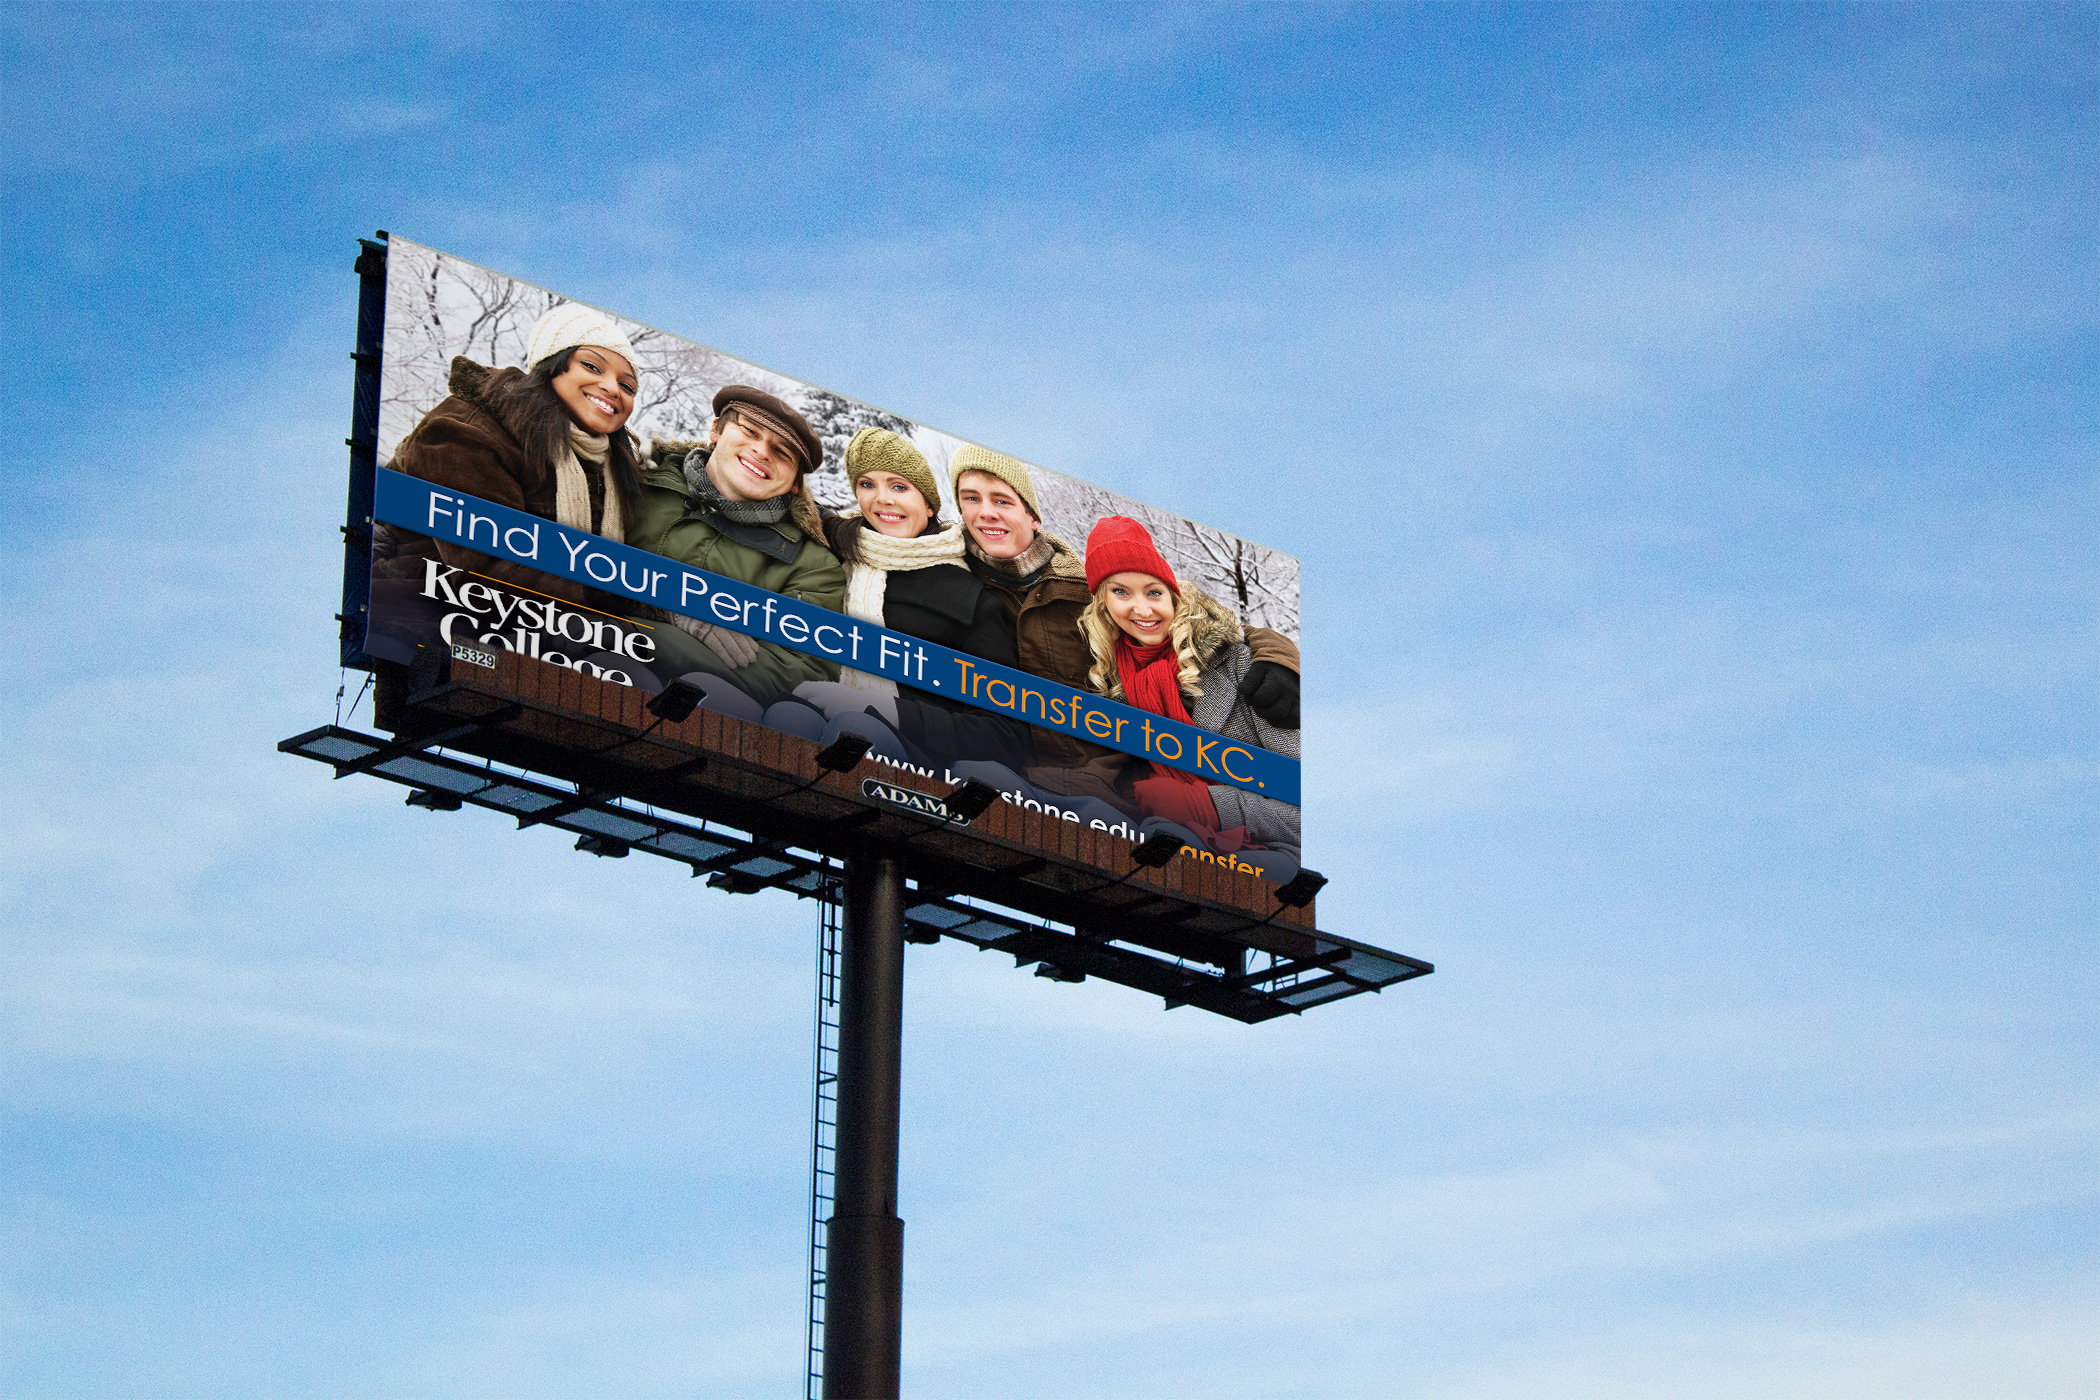 Transfer to Keystone – Outdoor Billboard